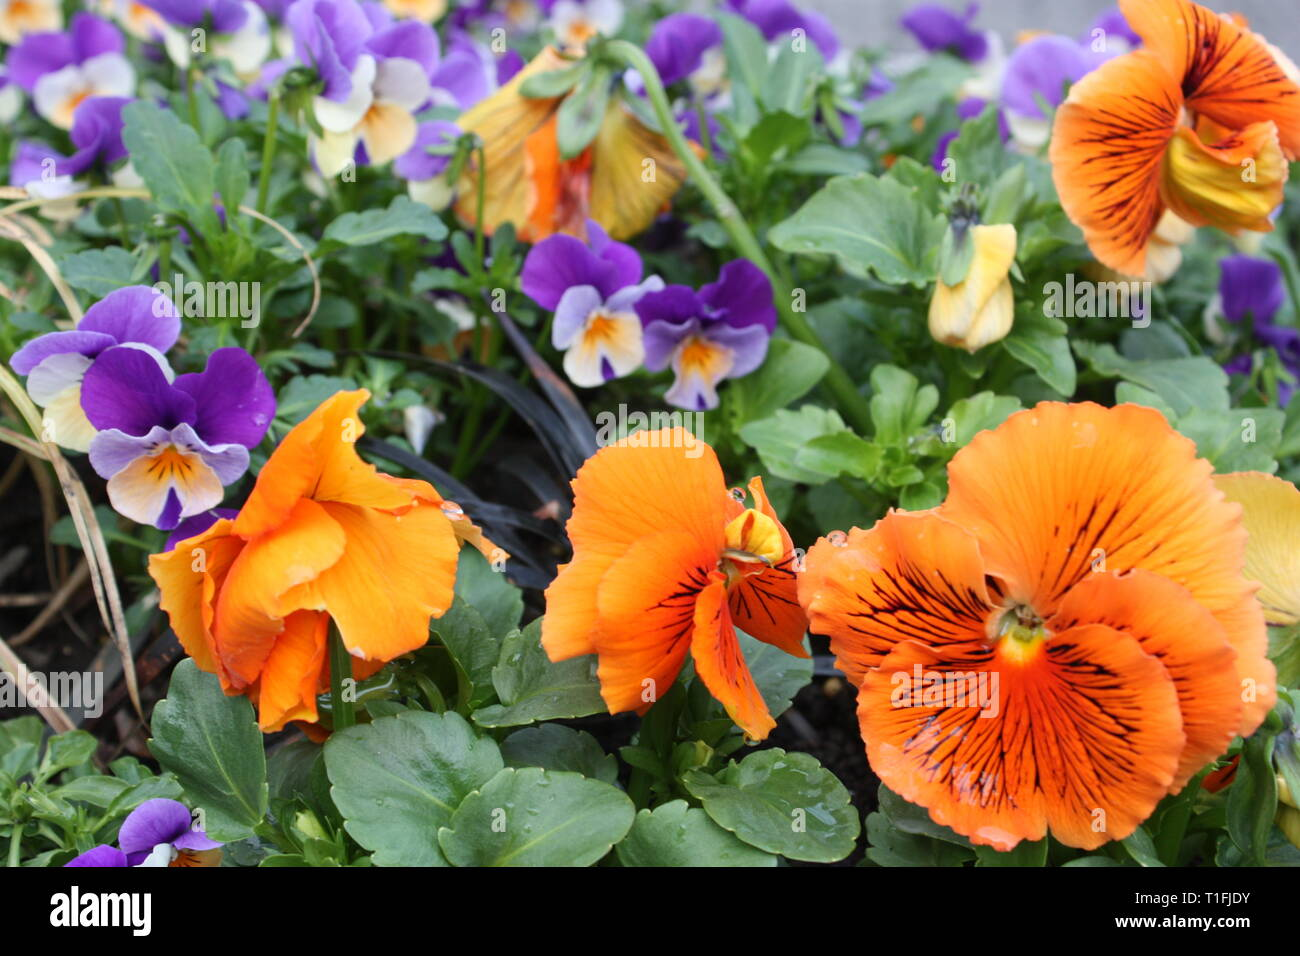 Pansy flowers in spring season Stock Photo